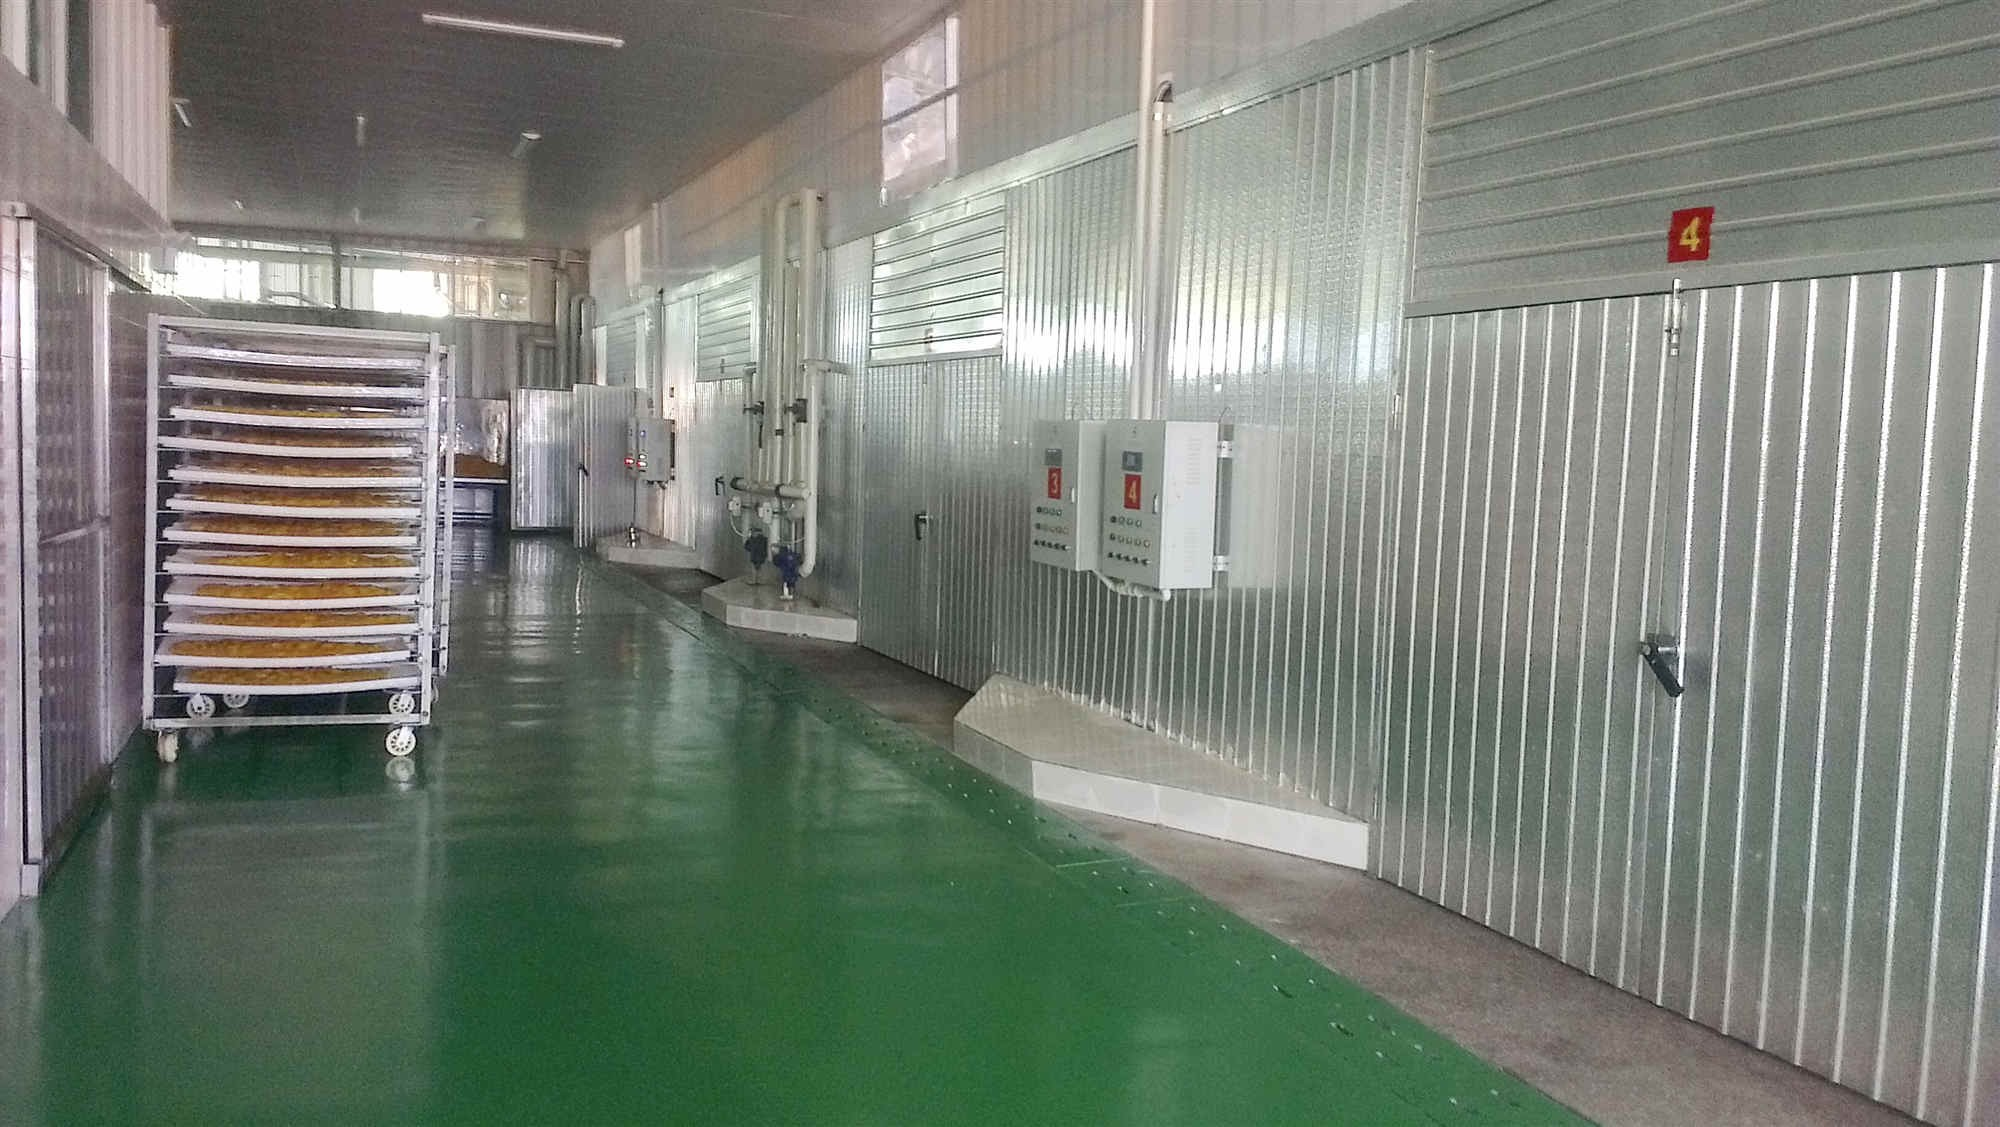 Aluminum Alloy Food Drying Kiln Manufacturers, Aluminum Alloy Food Drying Kiln Factory, Supply Aluminum Alloy Food Drying Kiln